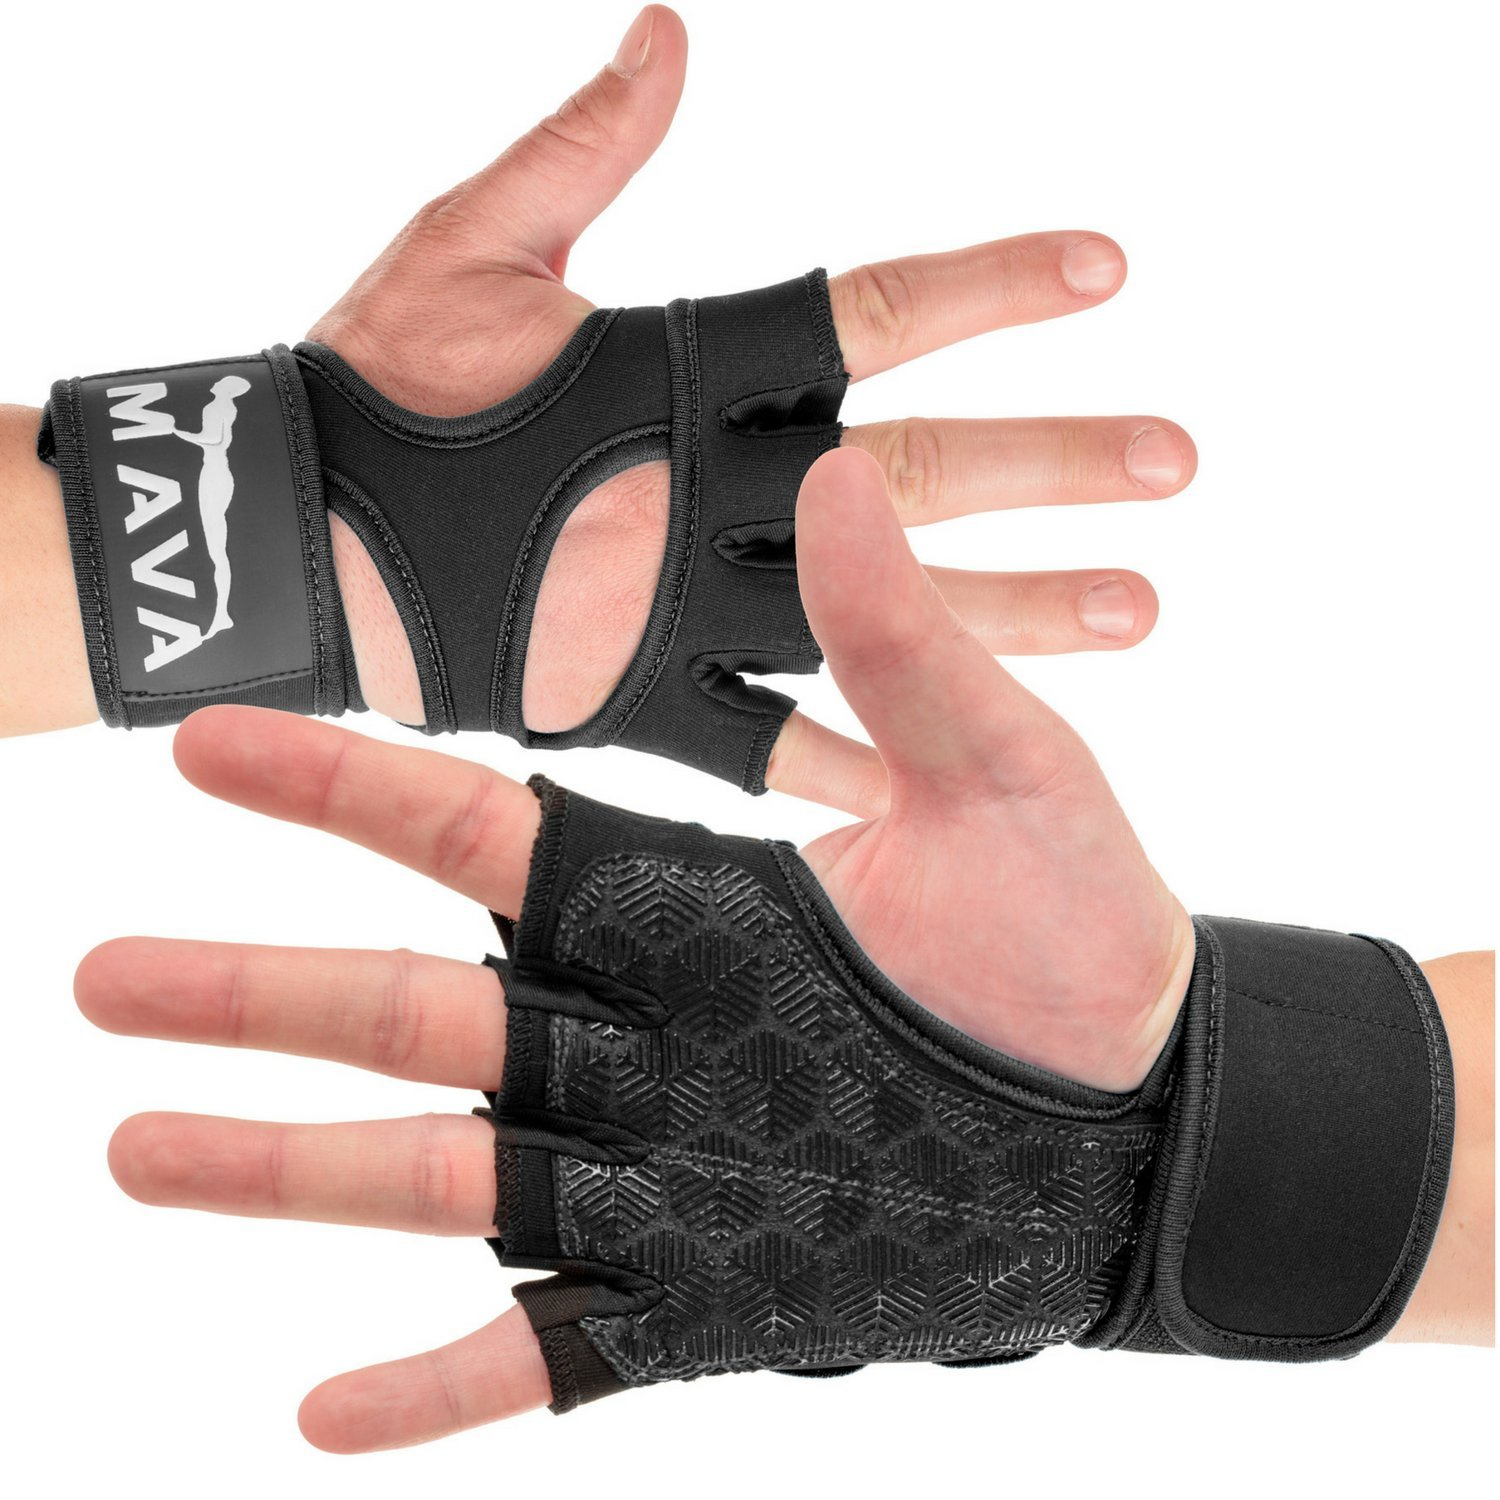 Mava Sports Cross Training Gloves - Weightlifting Gloves